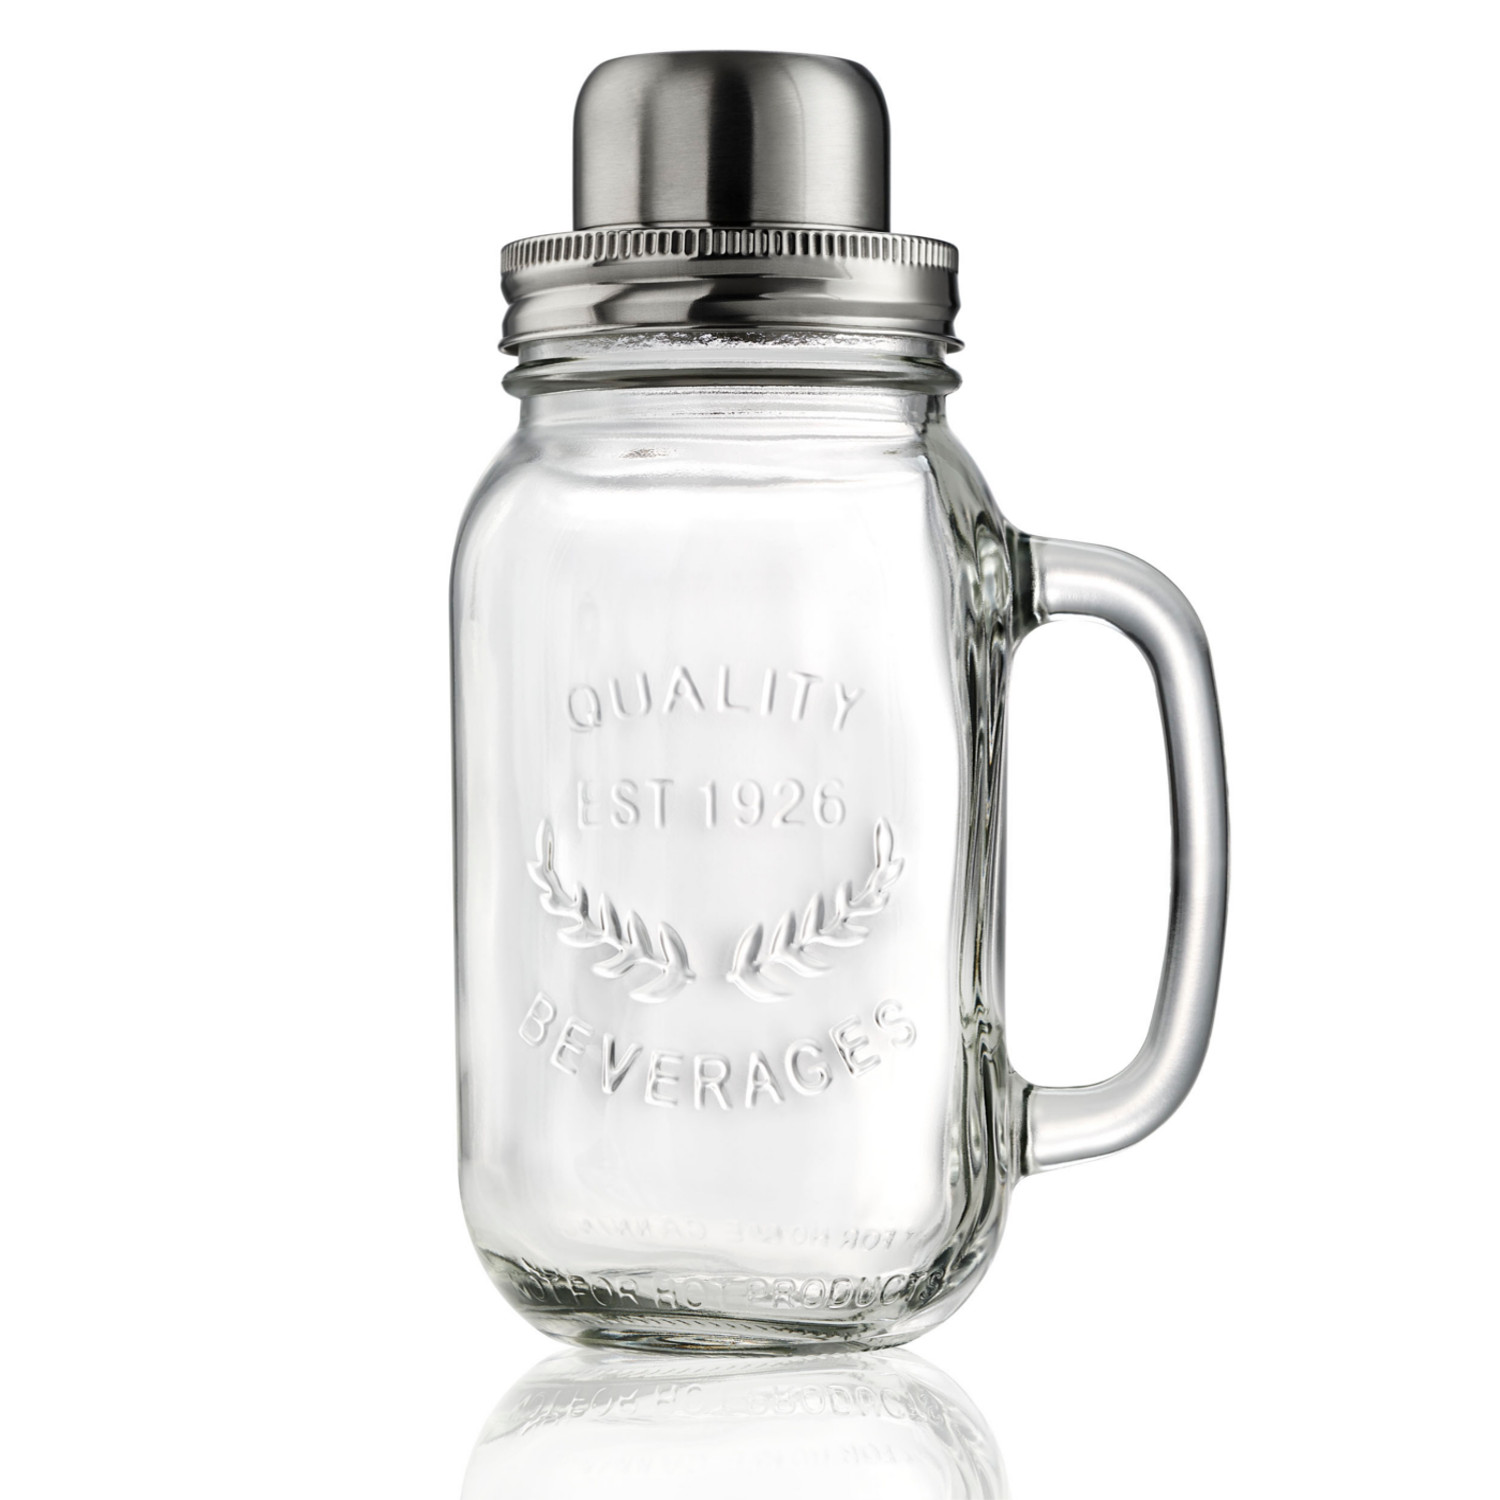 Artland Masonware Glass and Stainless Steel 22 Ounce Cocktail Shaker